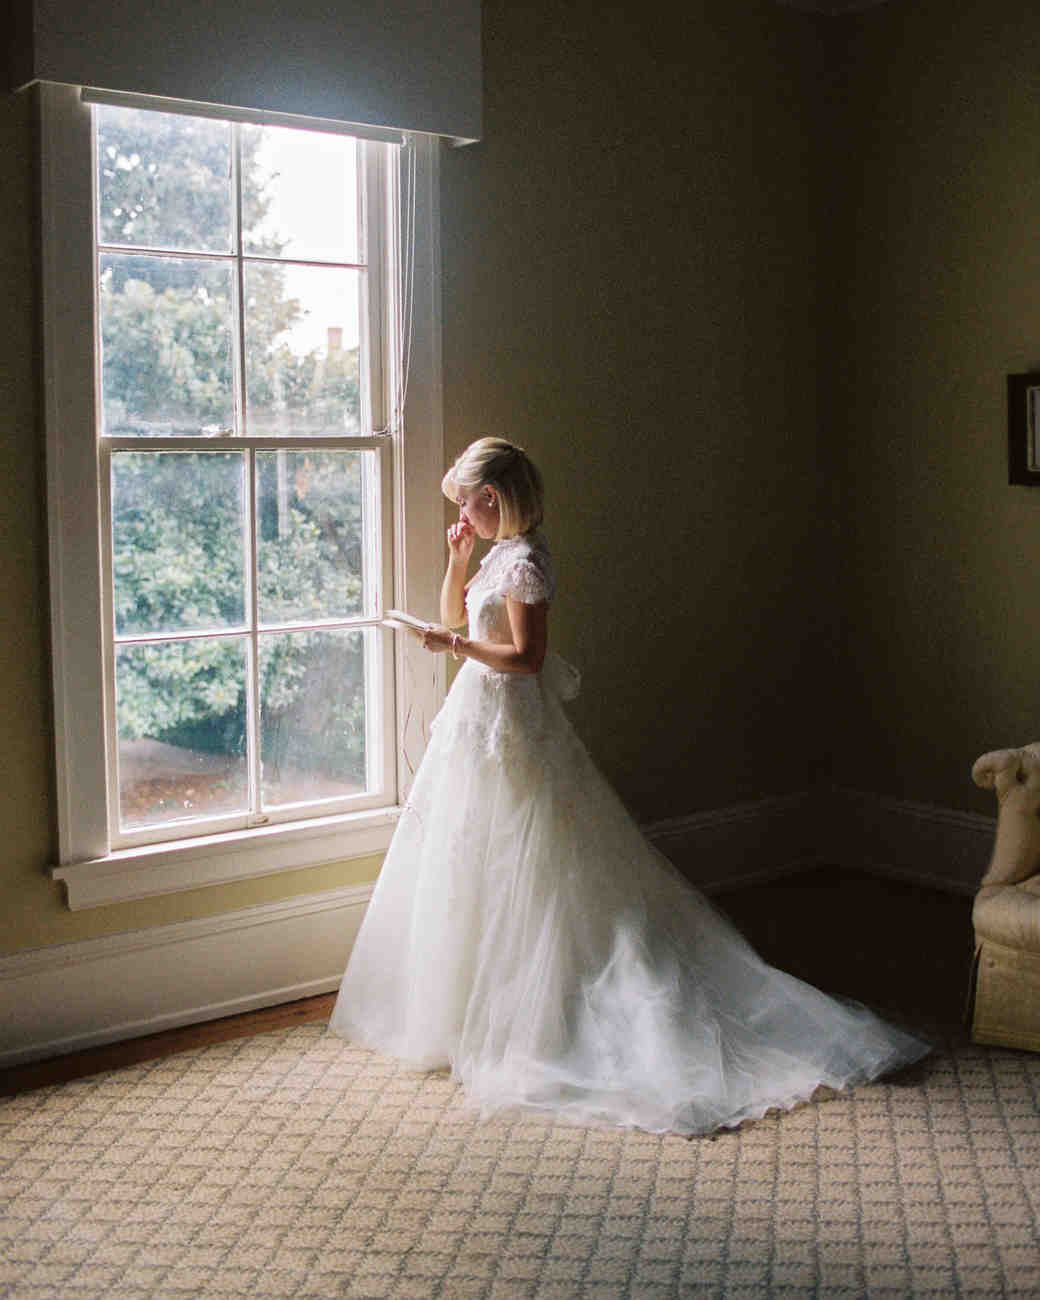 molly-patrick-wedding-note-3013-s111760-0115.jpg